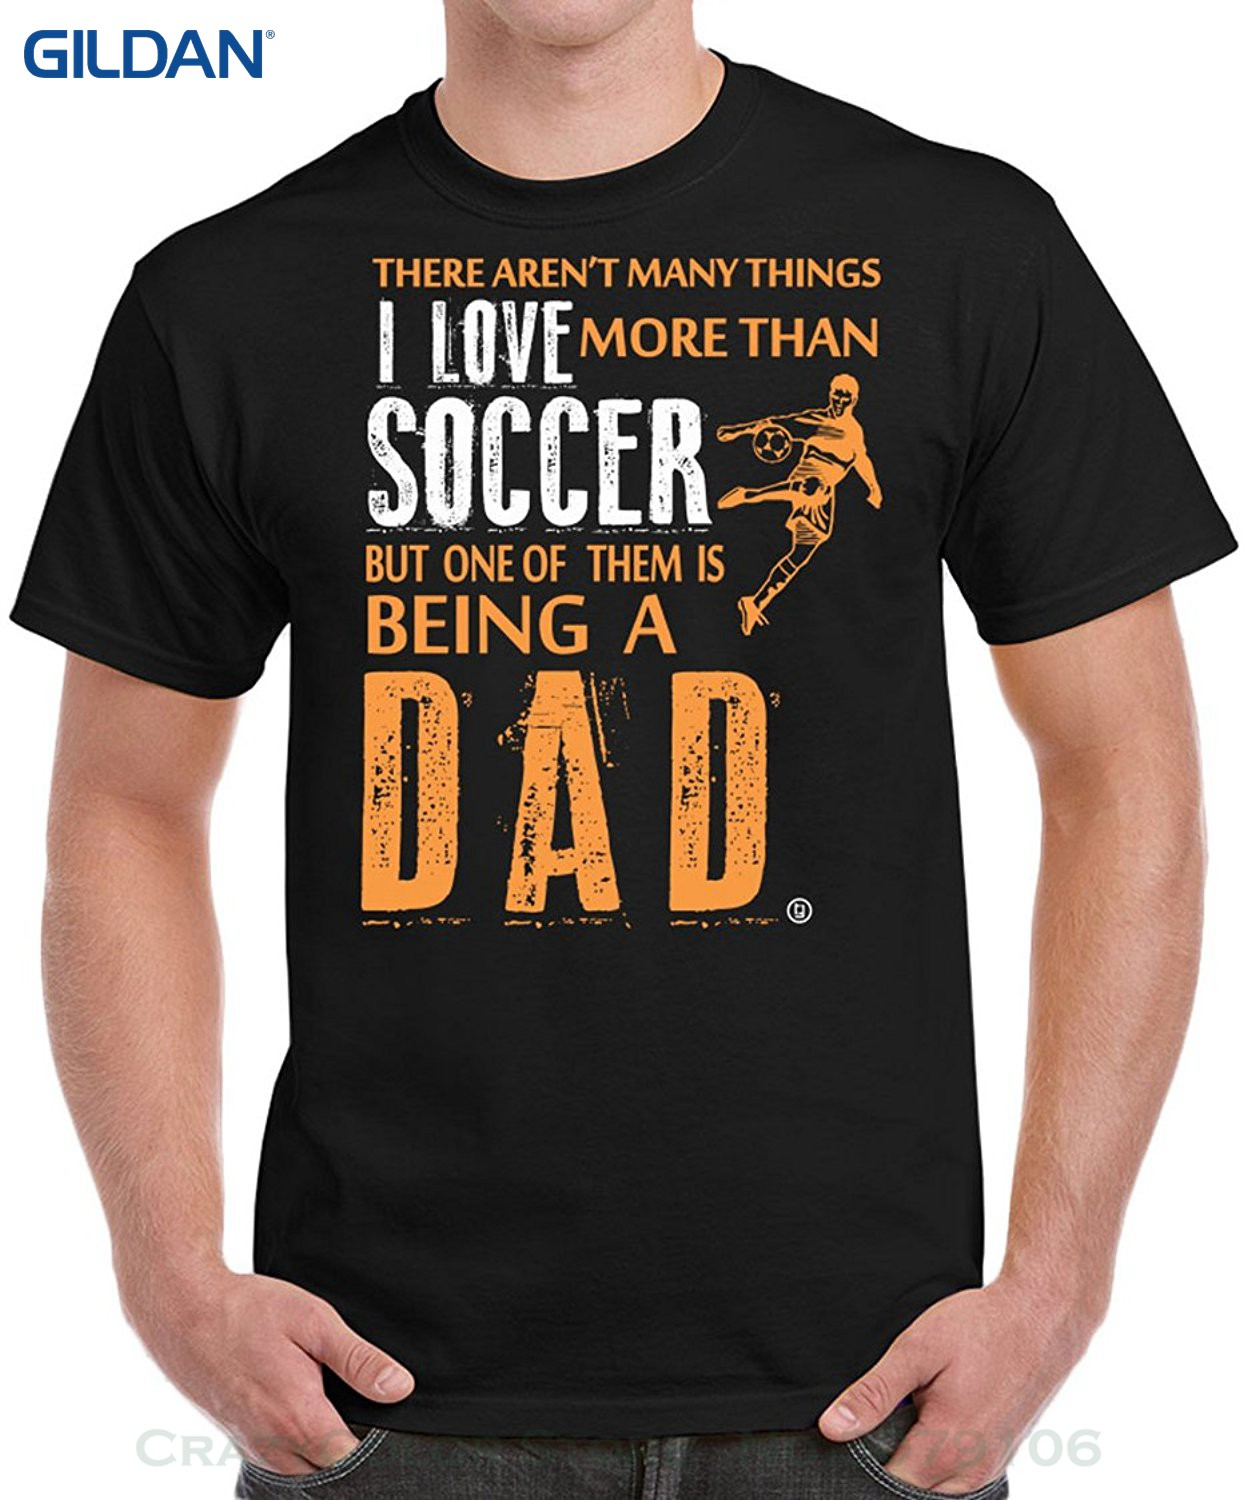 New Men Summer Tops Casuals Shirts Soccerite Dad Fathers Day Gifts Birthday Gifts I Love Soccerite Mens T-shirt